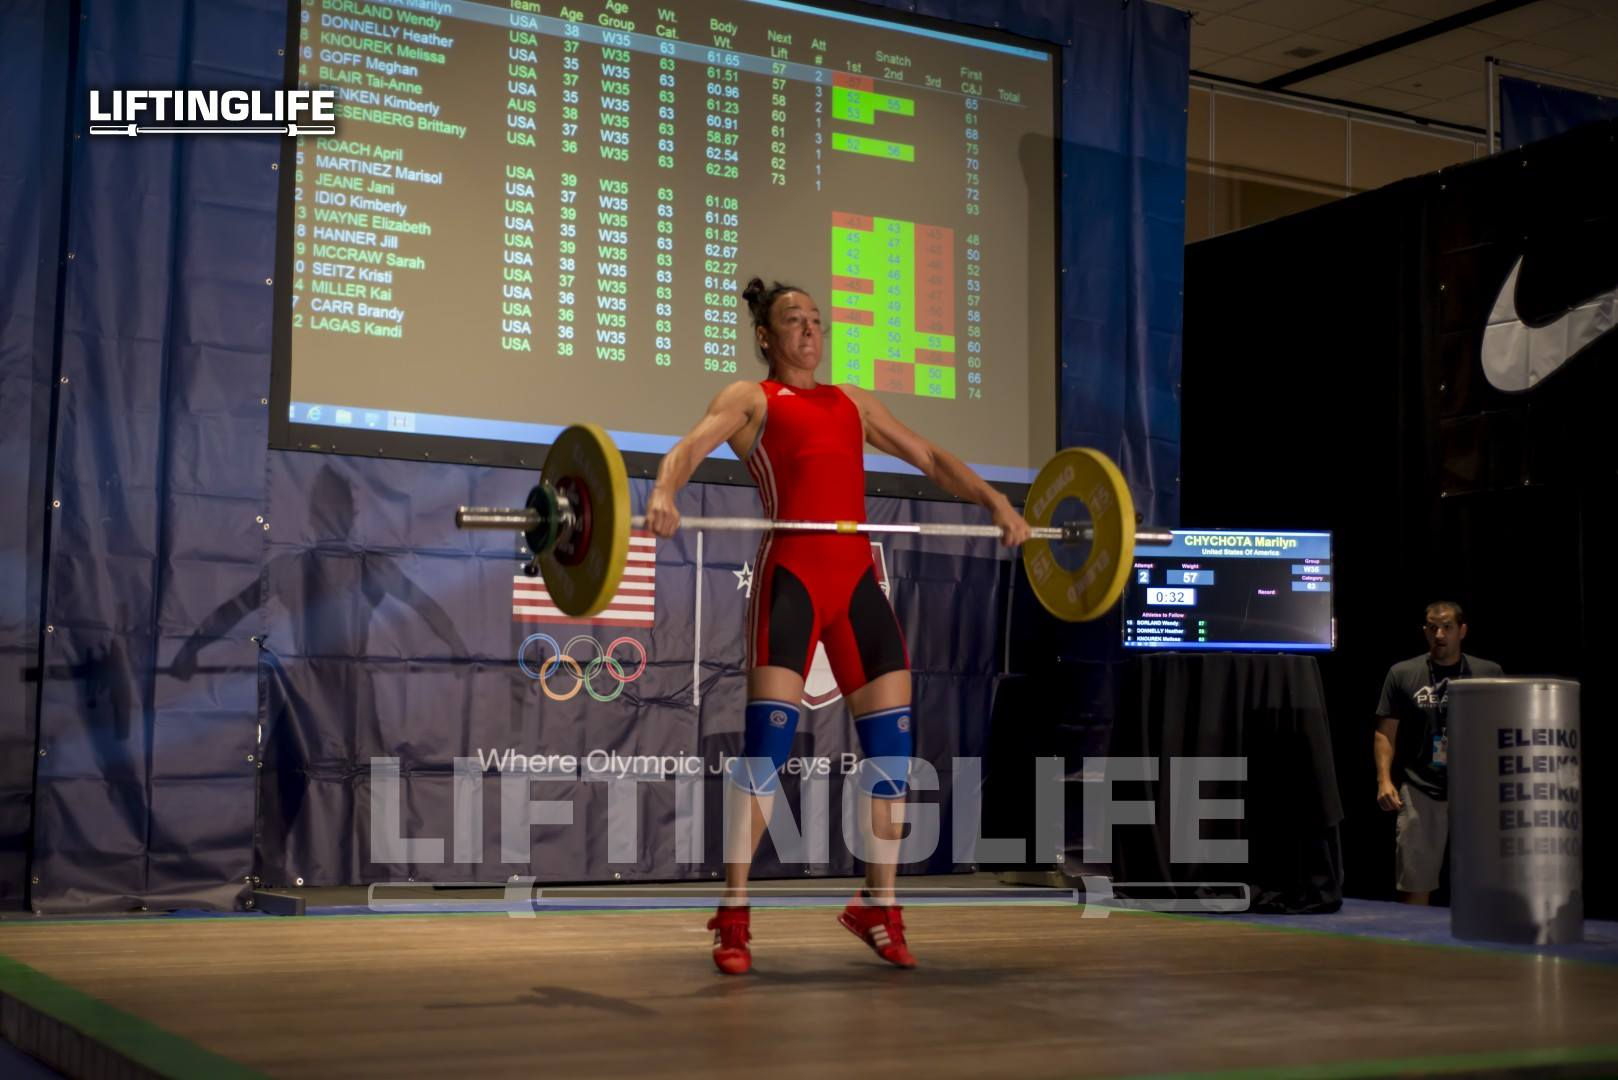 Marilyn Chychota Weightlifting